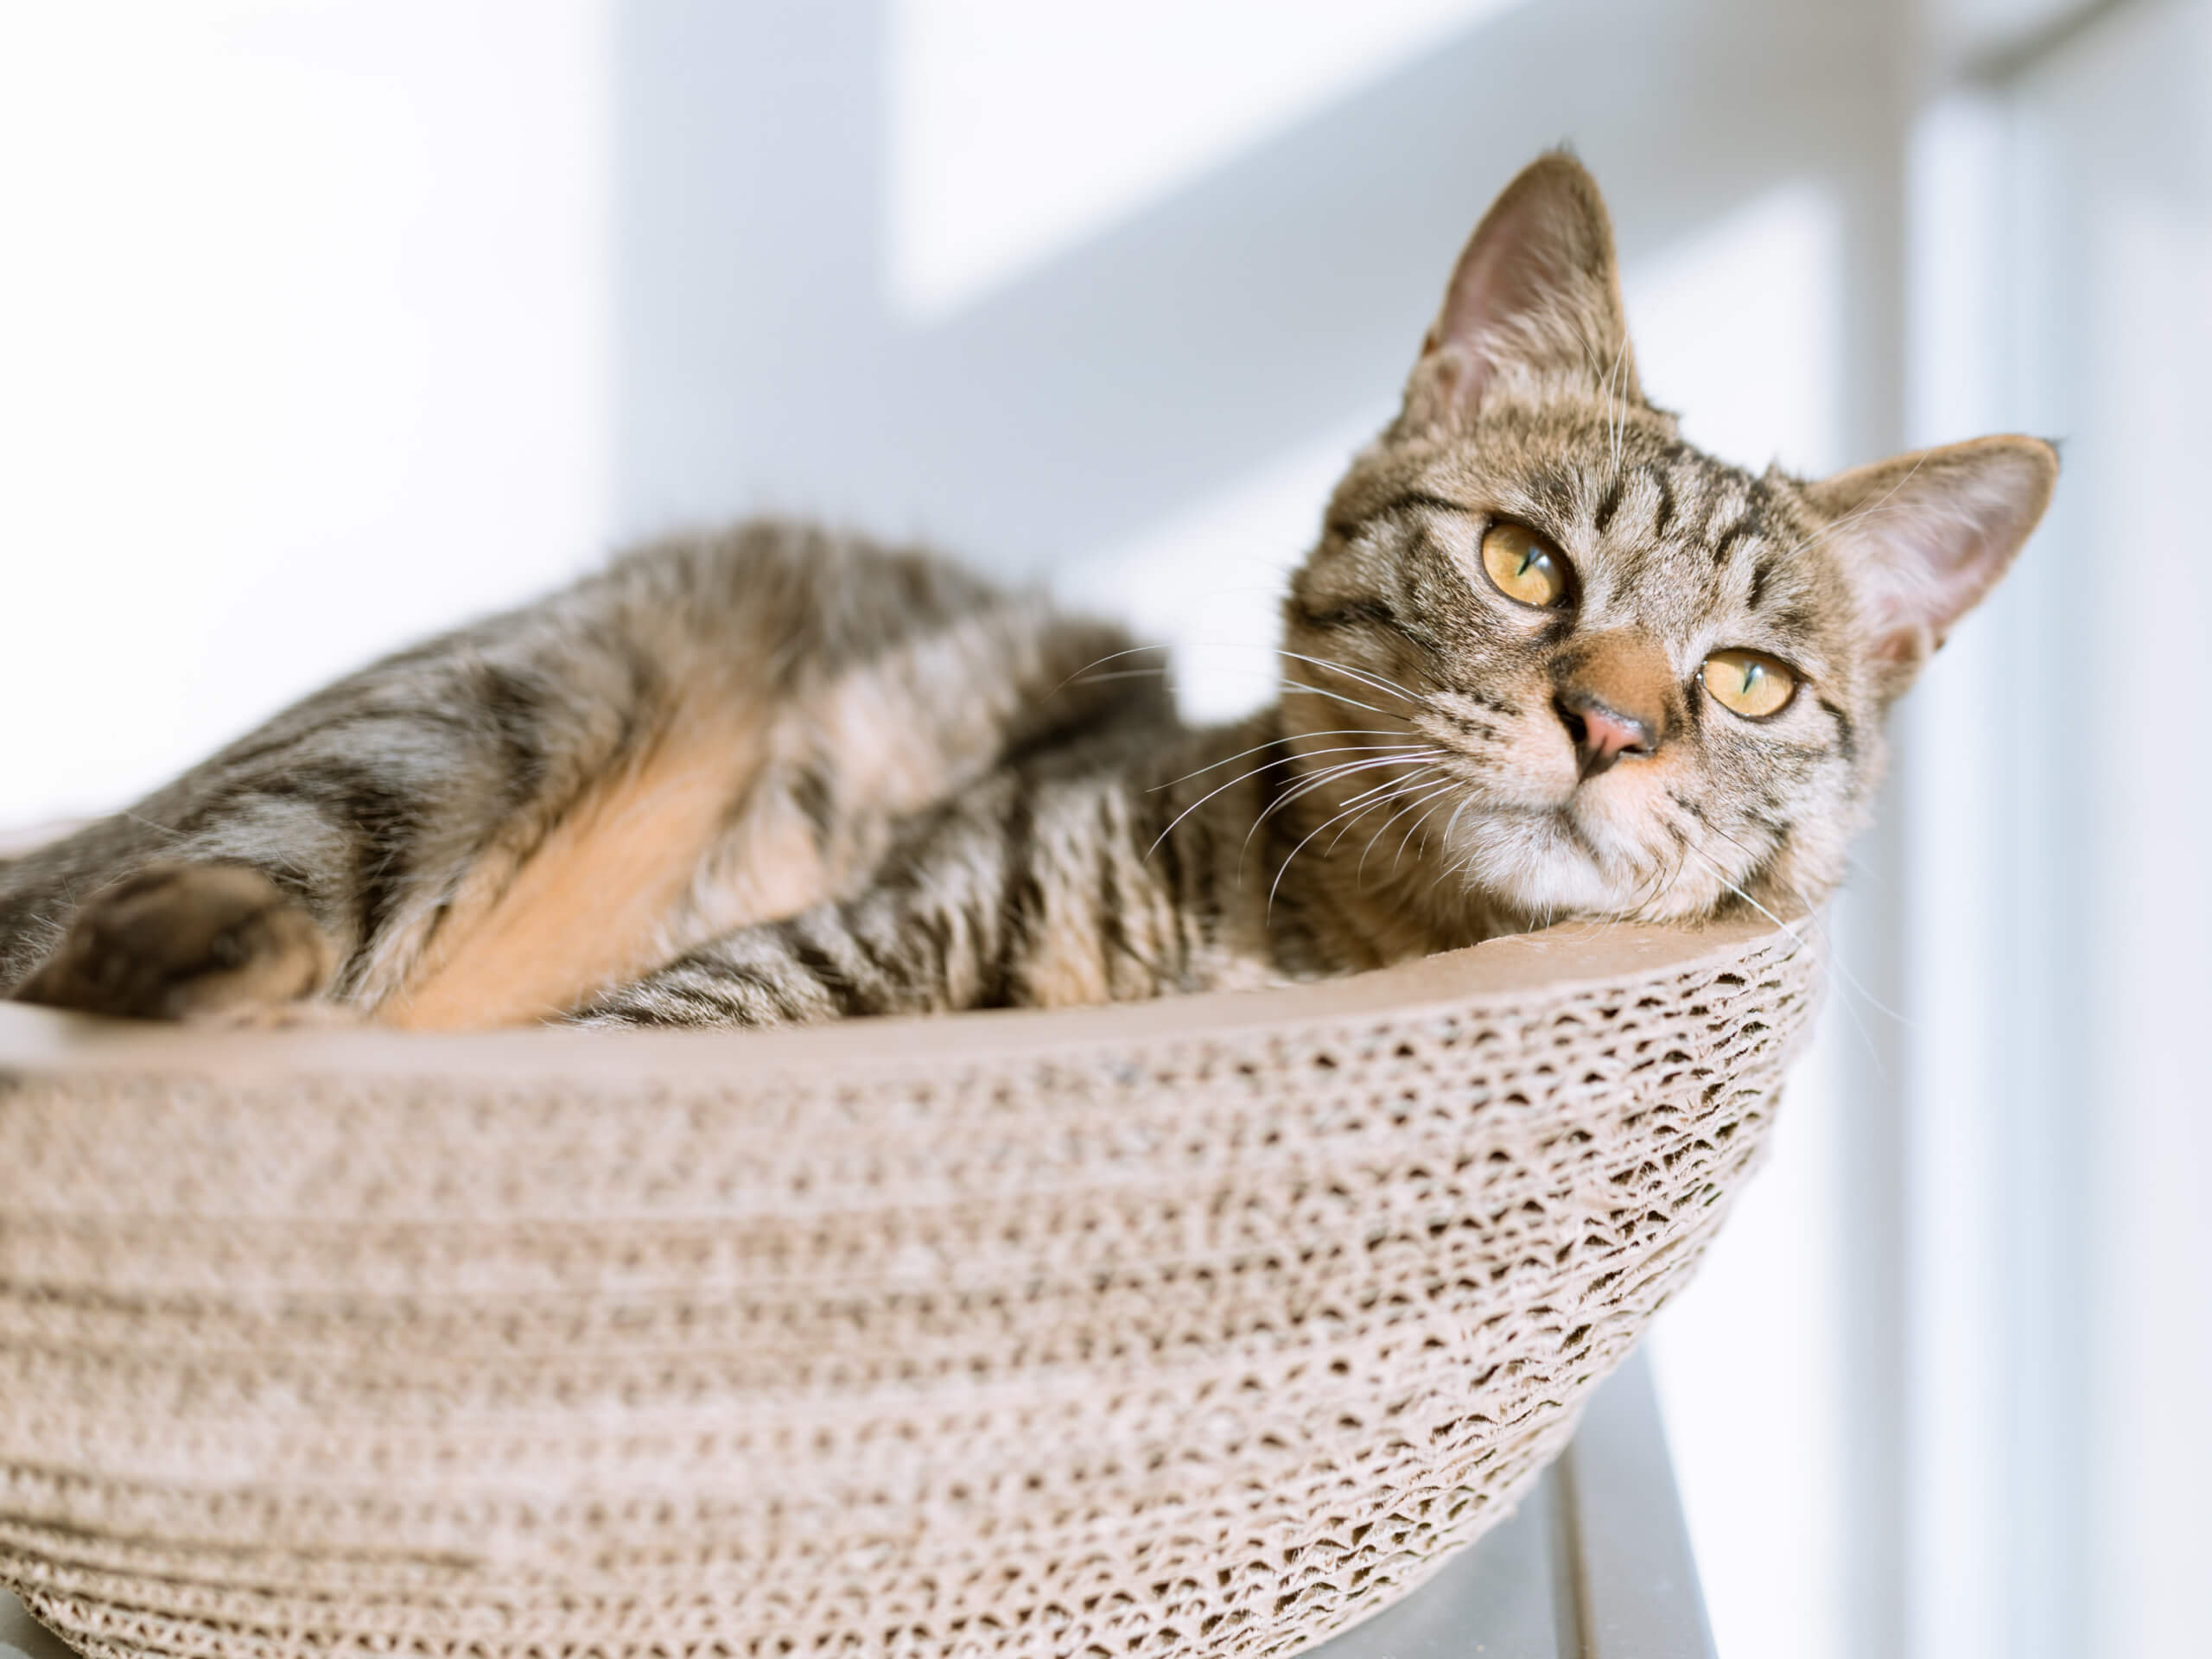 Cat relaxing in a basket in the sunshine